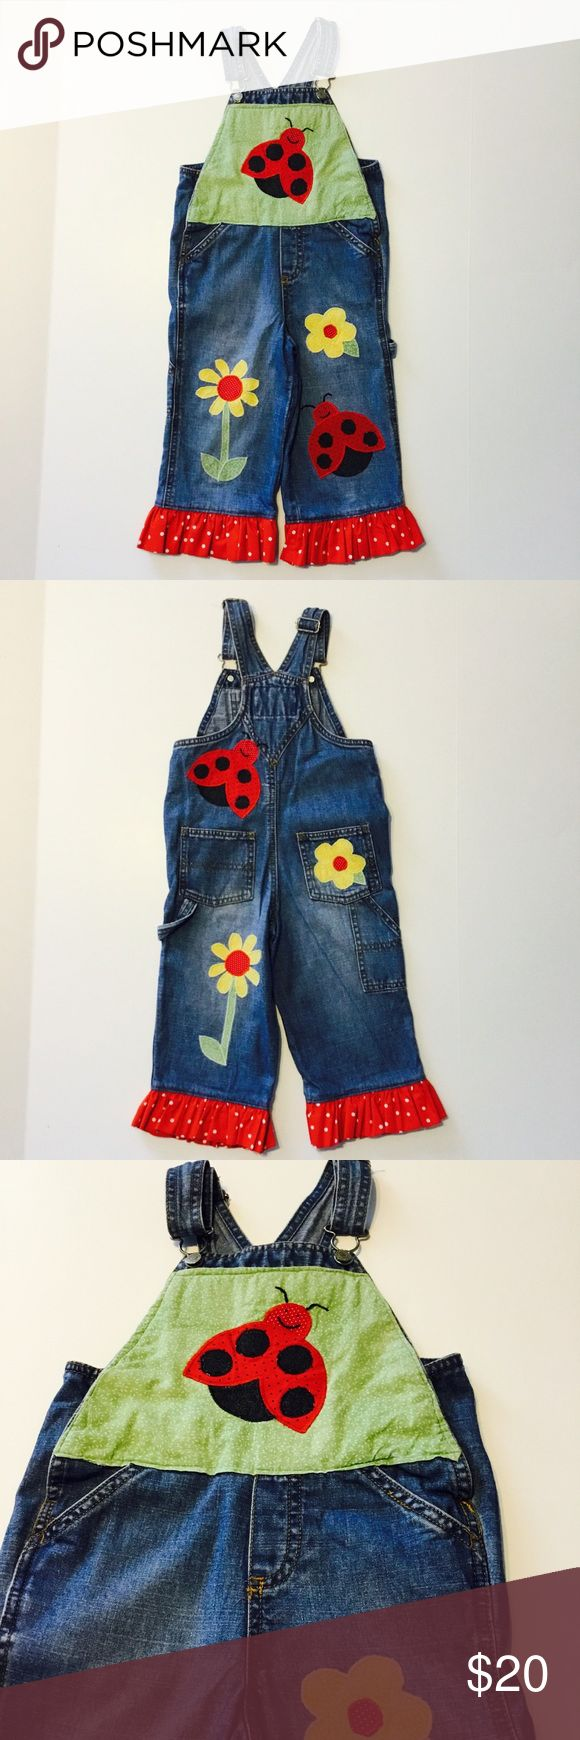 Old Navy Girls overalls 3T This is an EUC pair of overalls. Brand is Old Navy, they are decorated with lady bugs, flowers and have a ruffled hem at the leg. Old Navy Bottoms Overalls